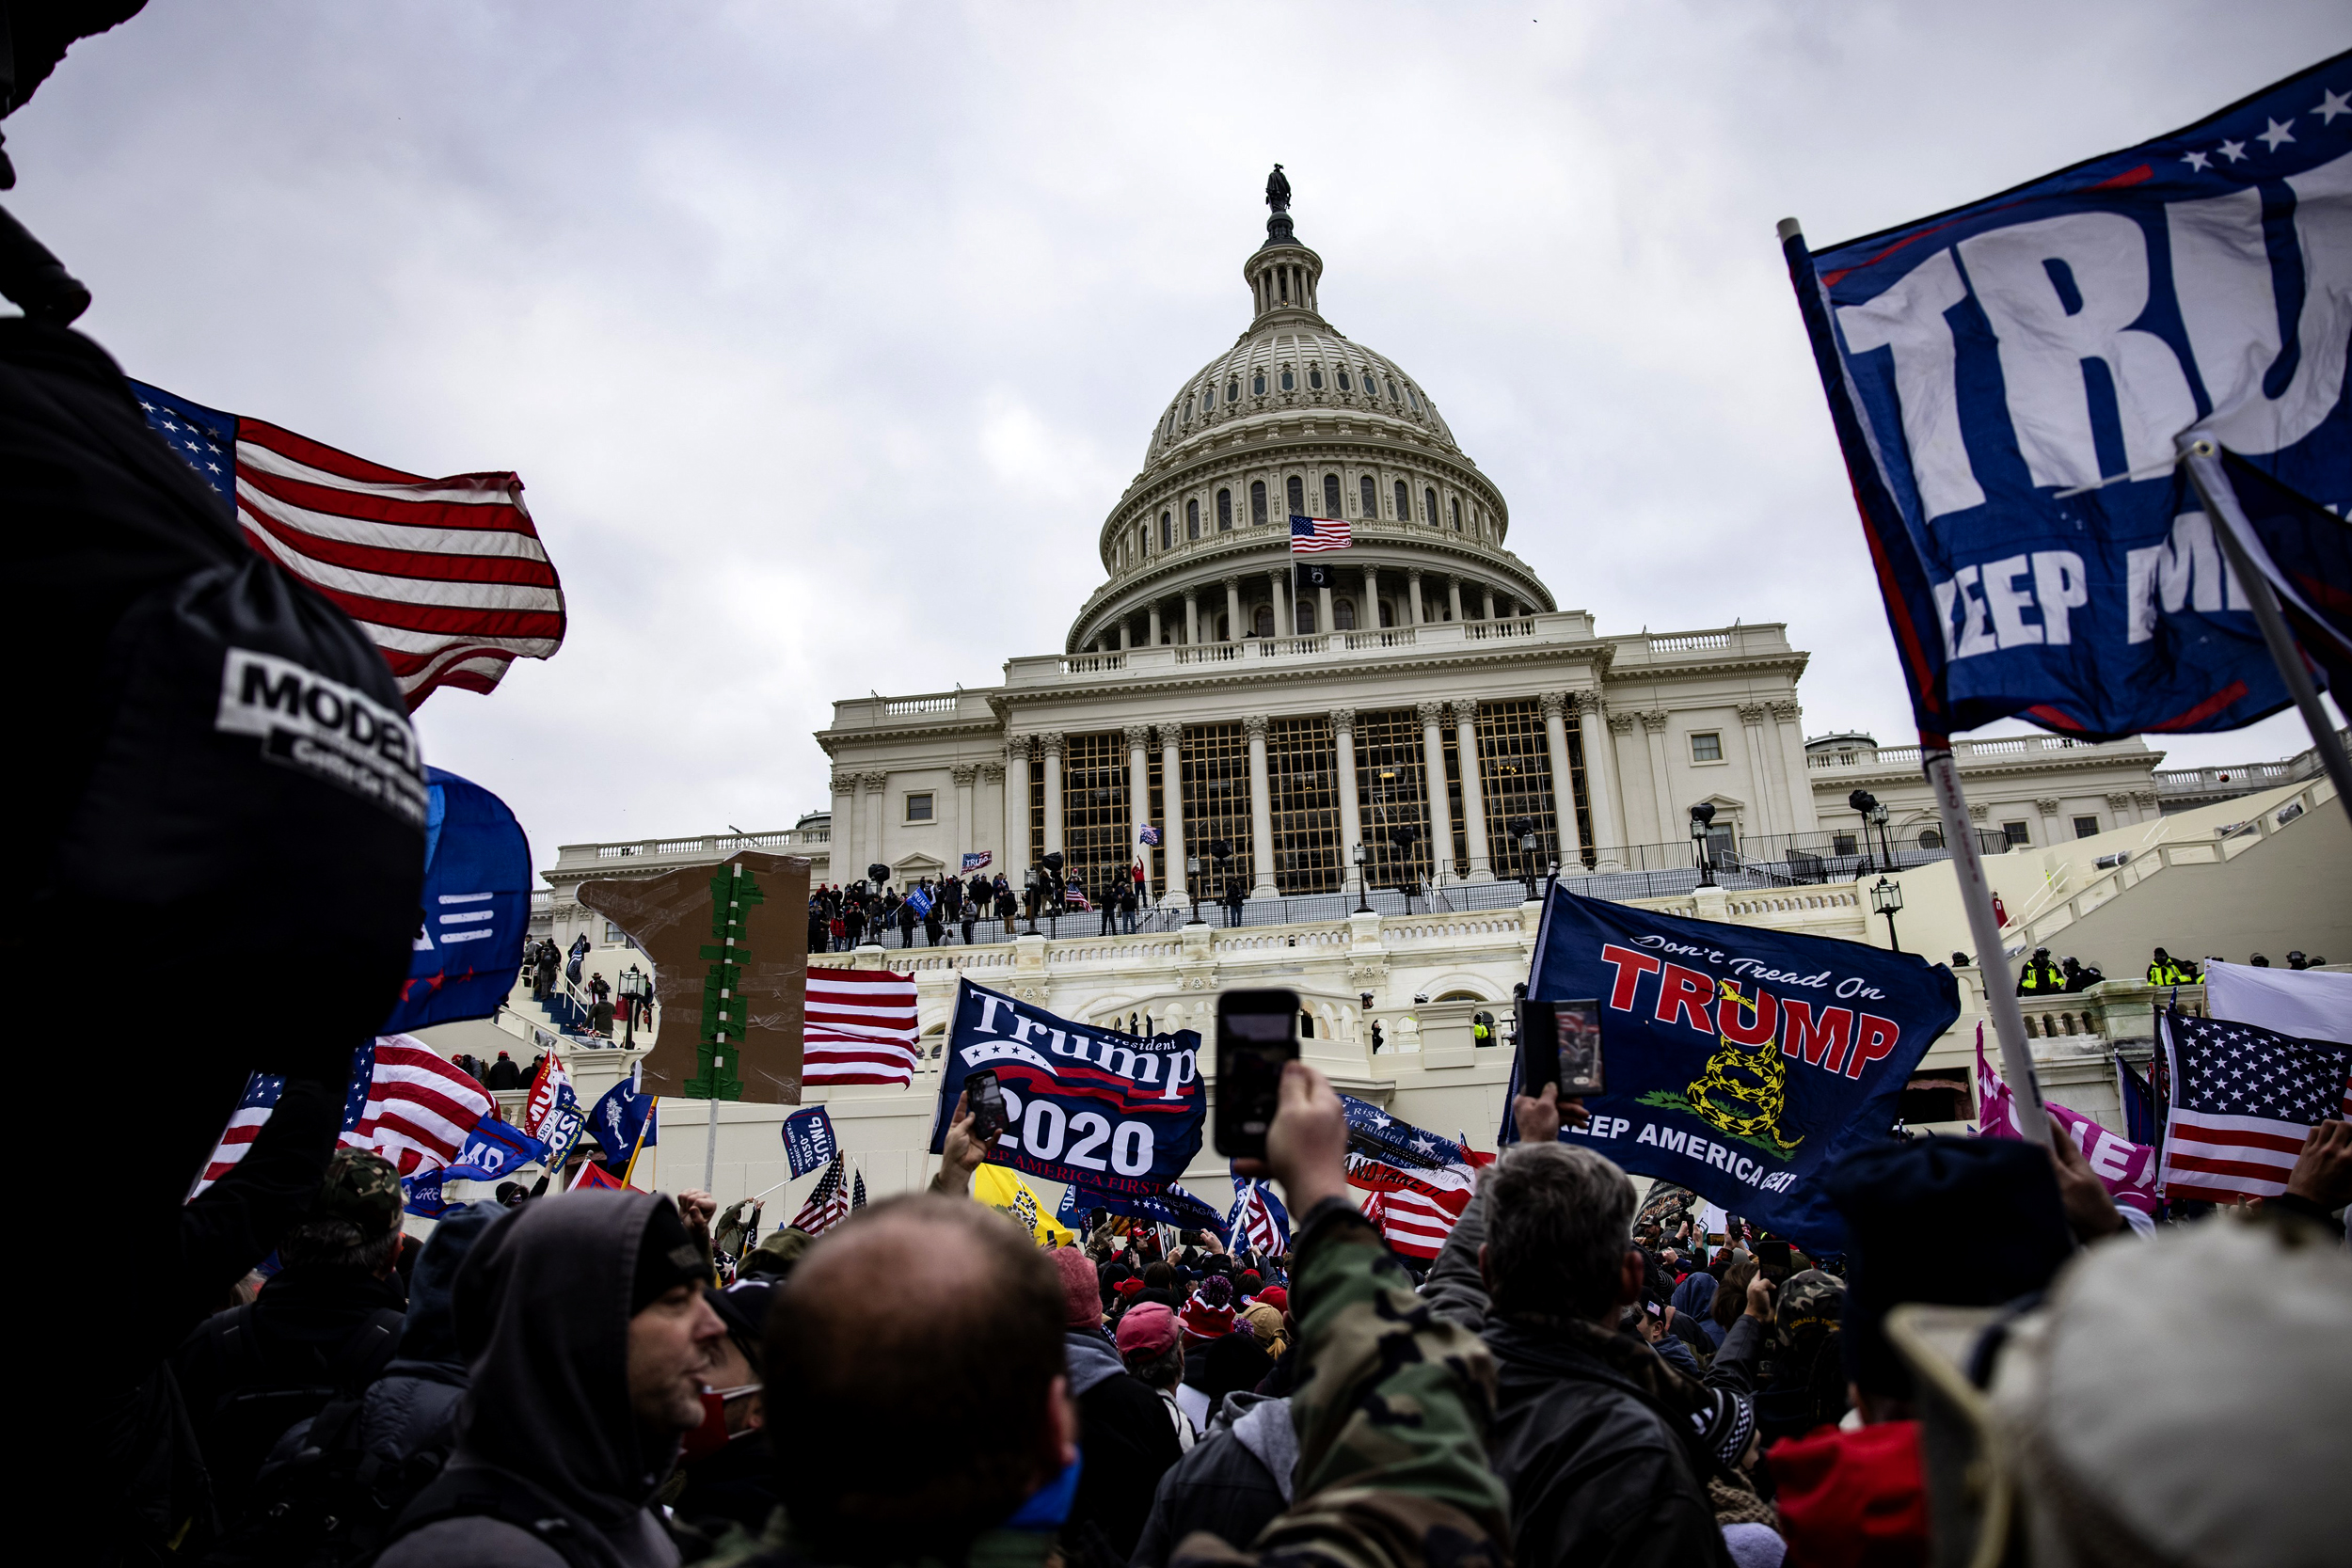 4 dead, Congress evacuated, National Guard activated after pro-Trump  rioters storm Capitol